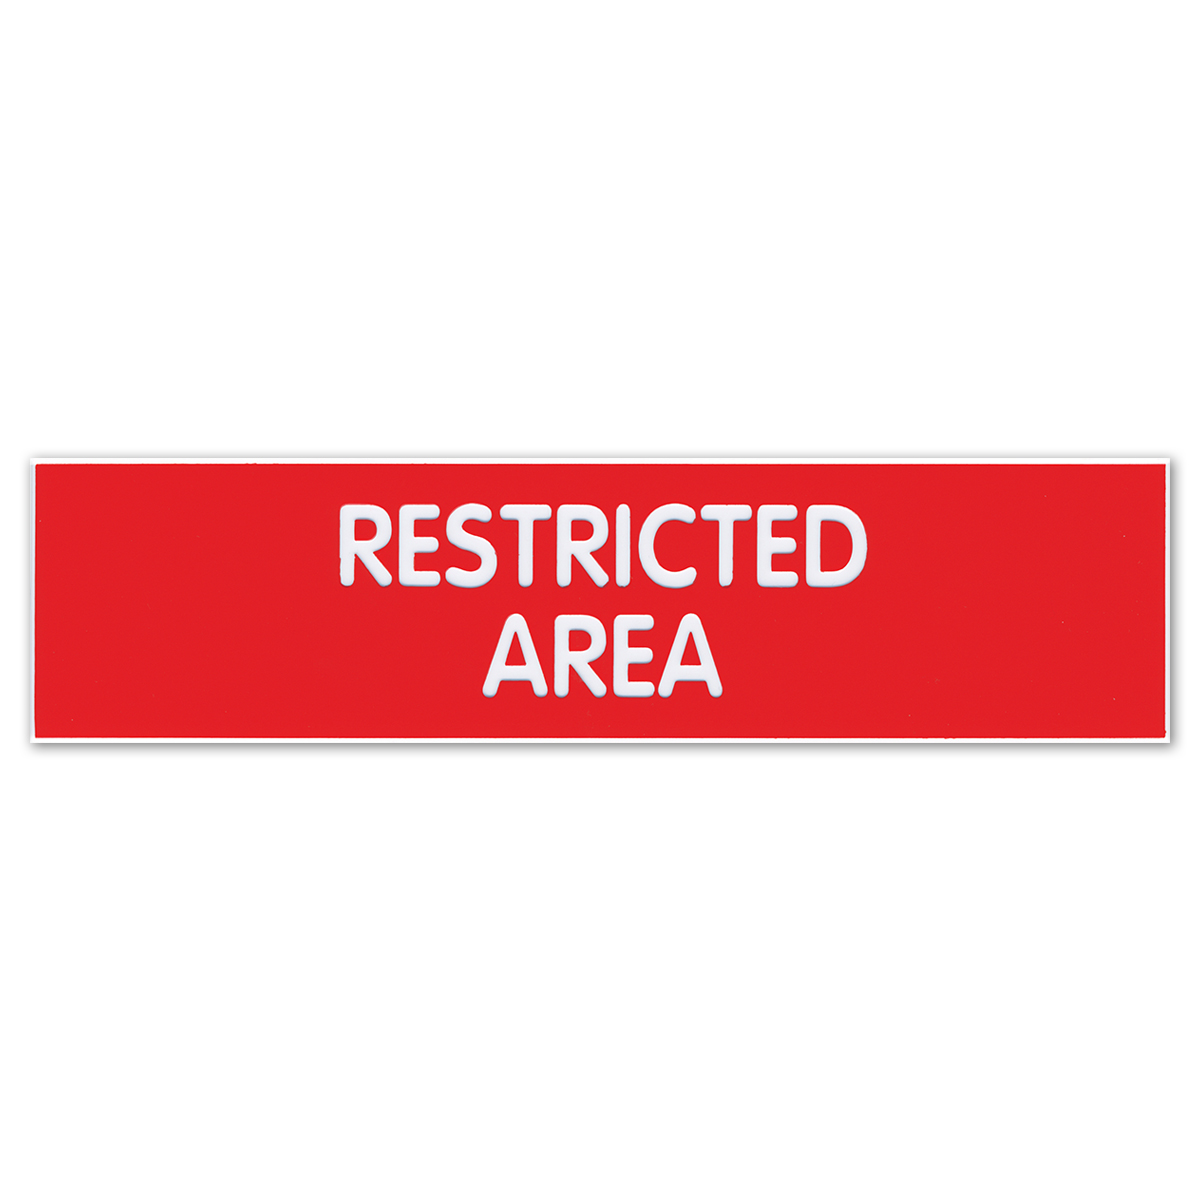 RESTRICTED AREA - Plastic Sign - 098005